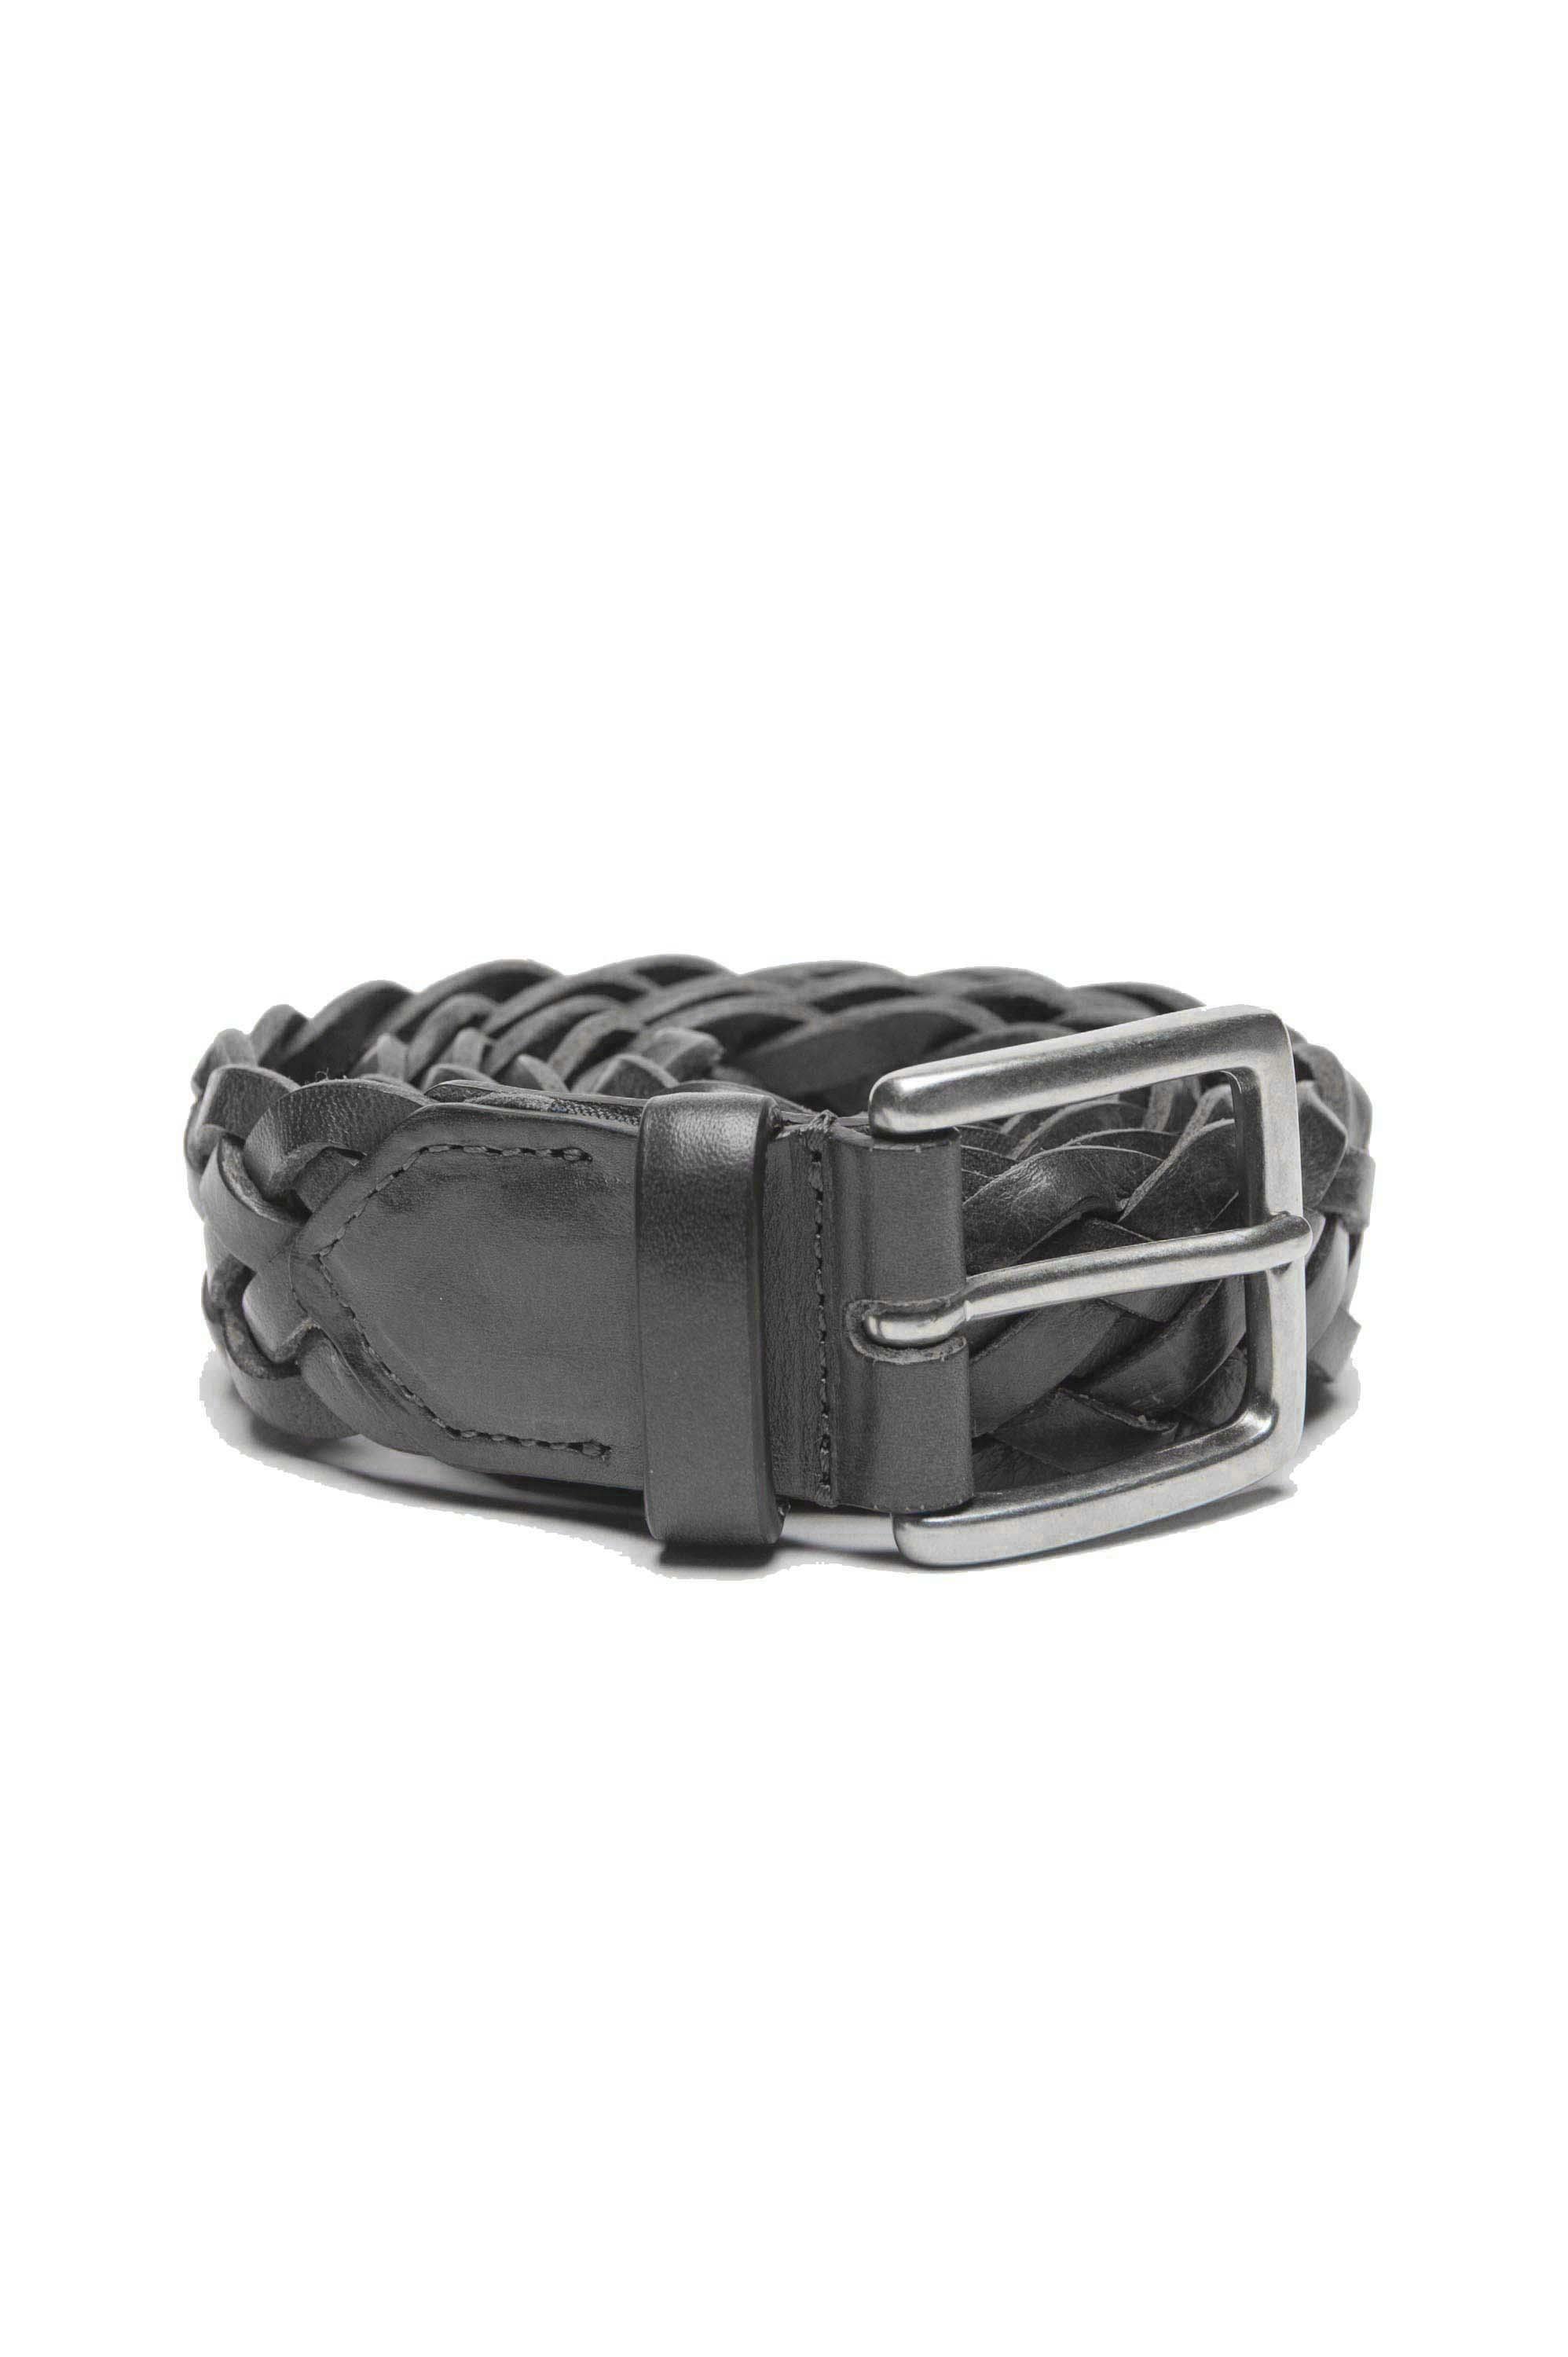 SBU 01235 Braided leather belt 01